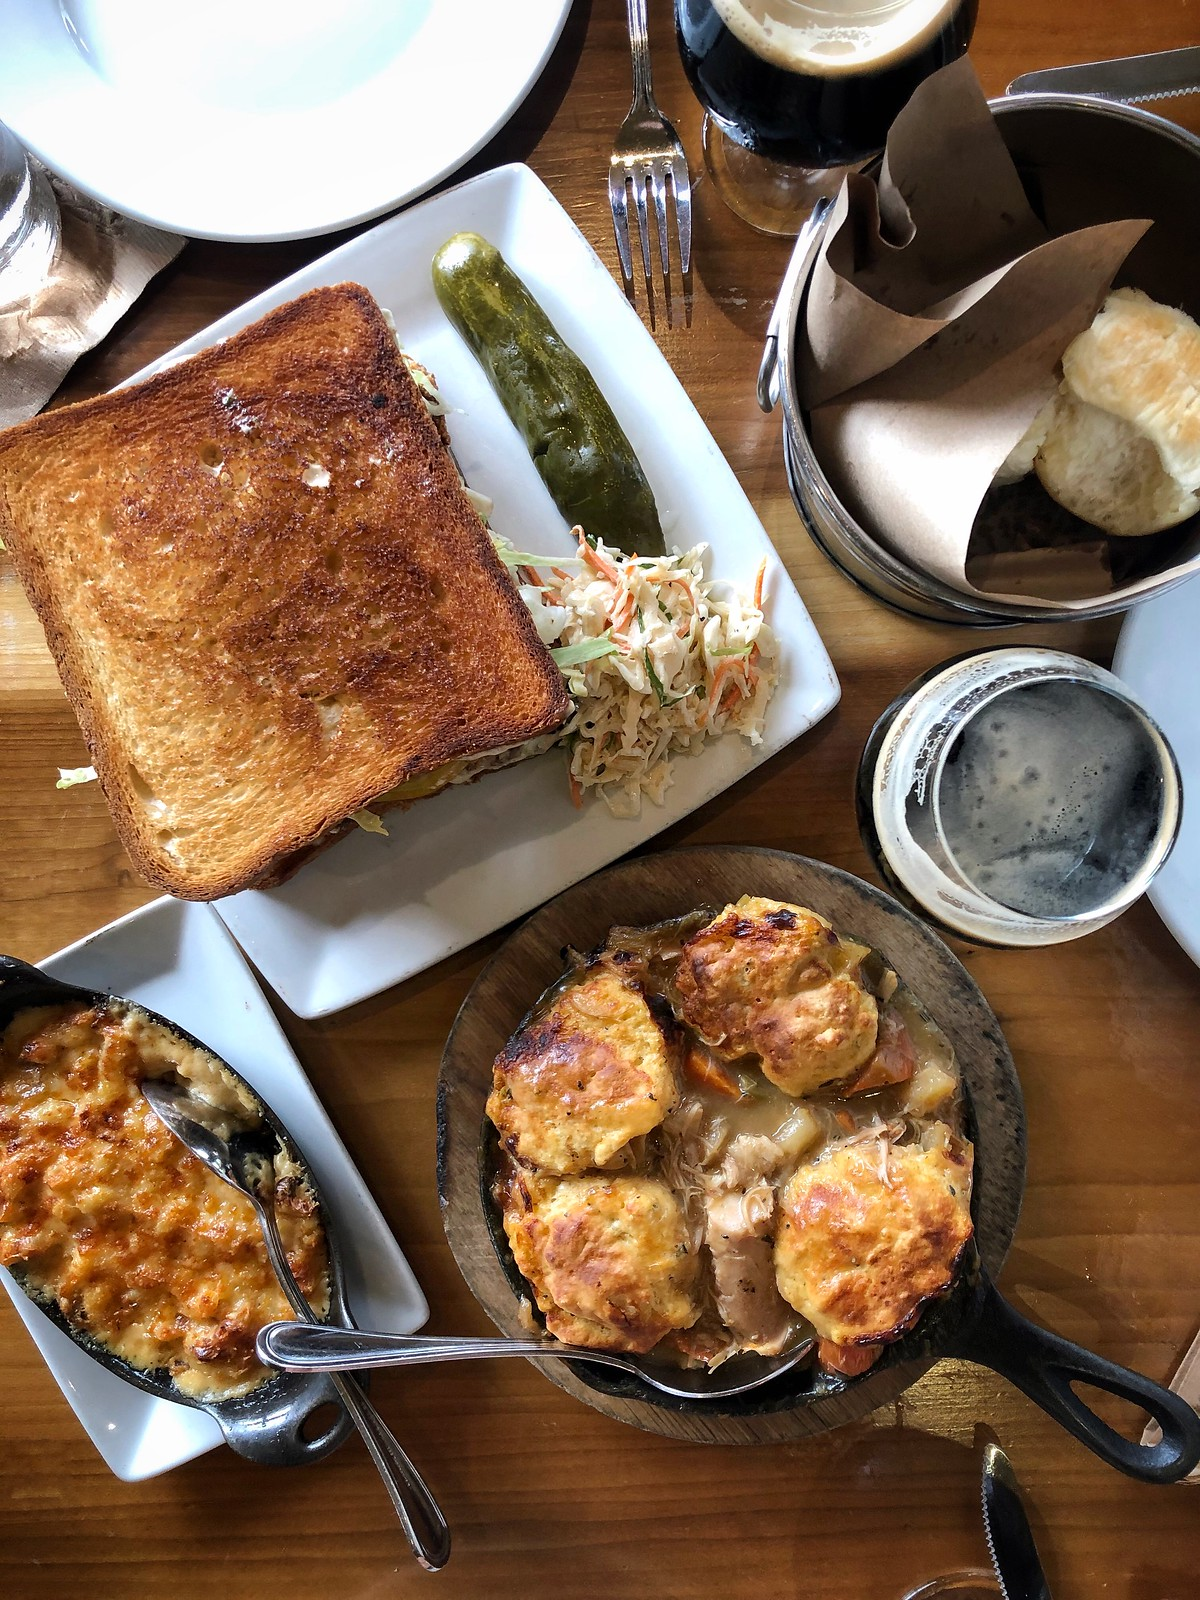 Cochon New Orleans | Where to Eat in New Orleans | Best Restaurants in NOLA | How to Spend 48 Hours in New Orleans in the Summer | New Orleans Travel Guide | What to do in New Orleans | 2 Days in New Orleans | Best Things to do in New Orleans | First Timer's Guide to NOLA | NOLA Travel Guide | 2 Day Itinerary for New Orleans